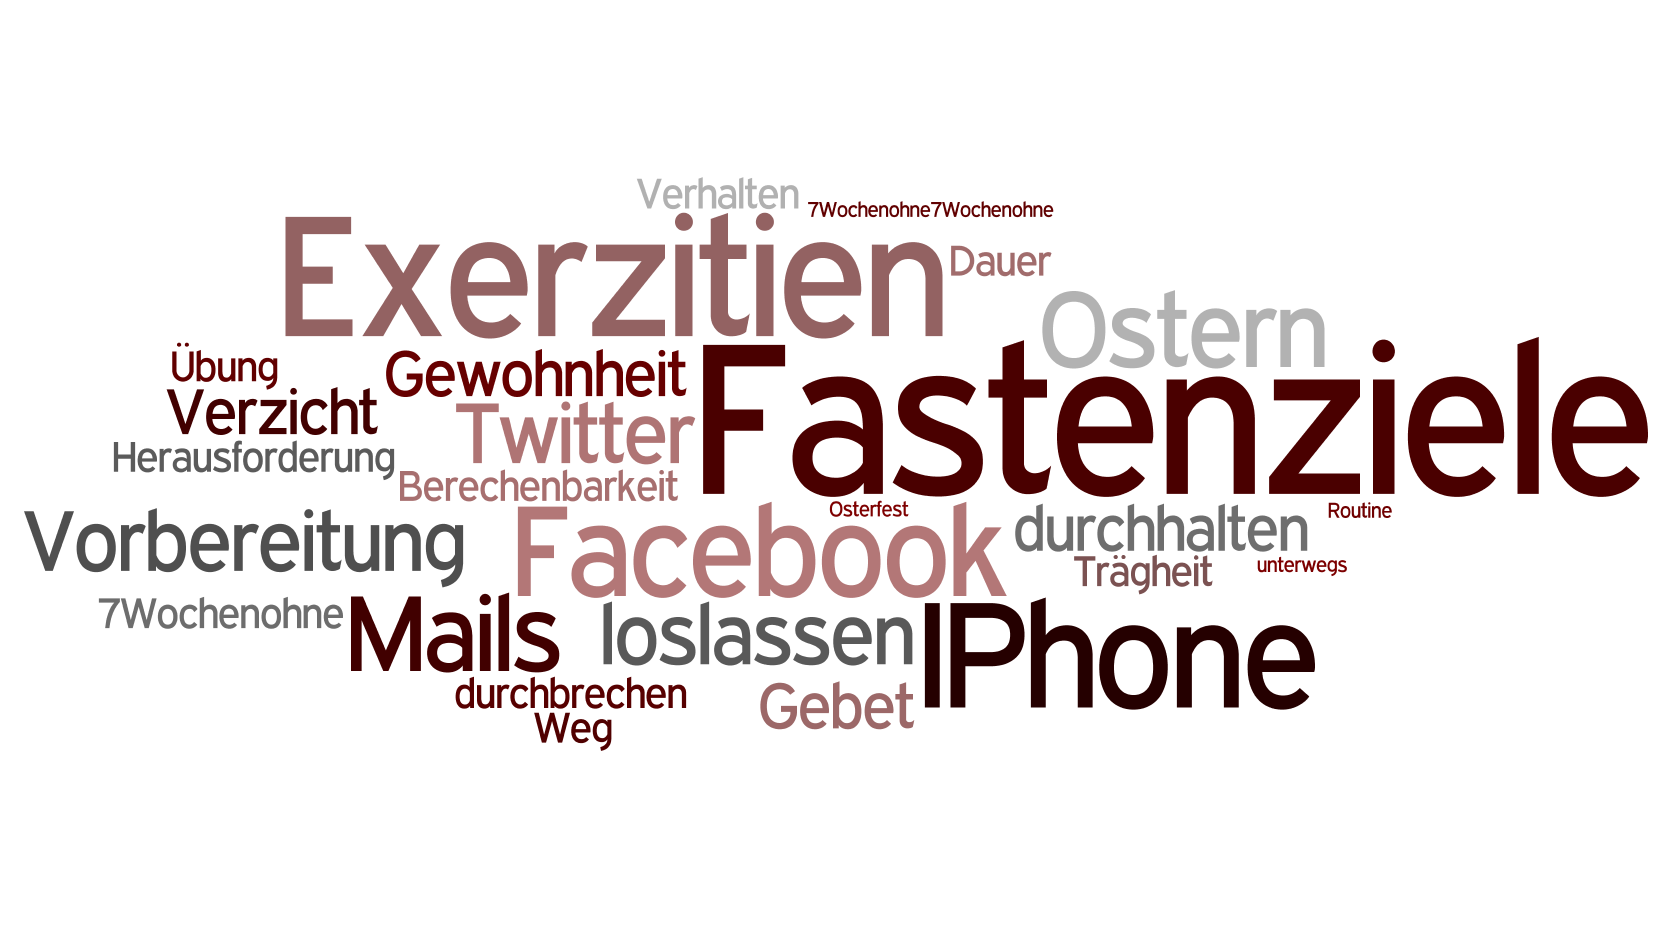 wordle Fastenziele